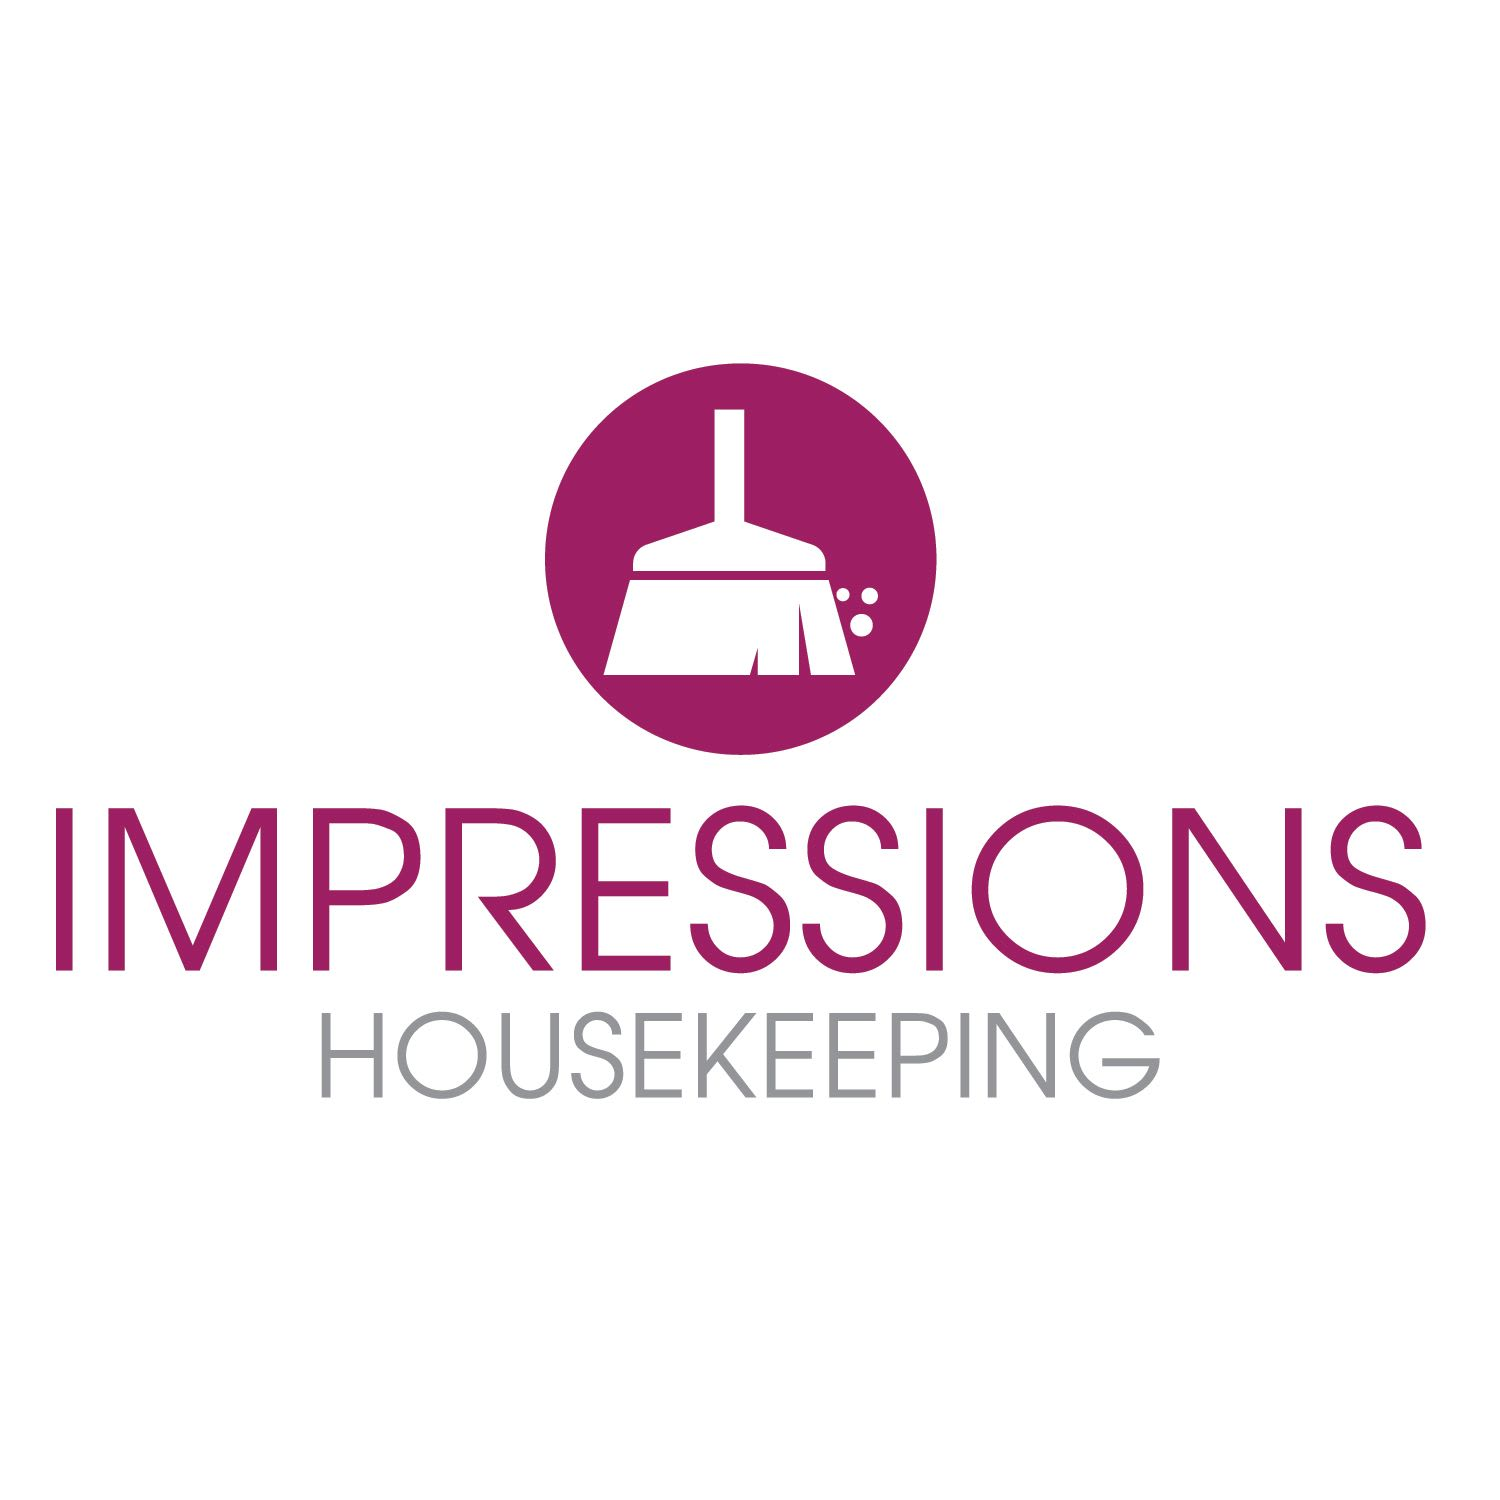 Housekeeping services that leave an impression in Fort Worth, Texas